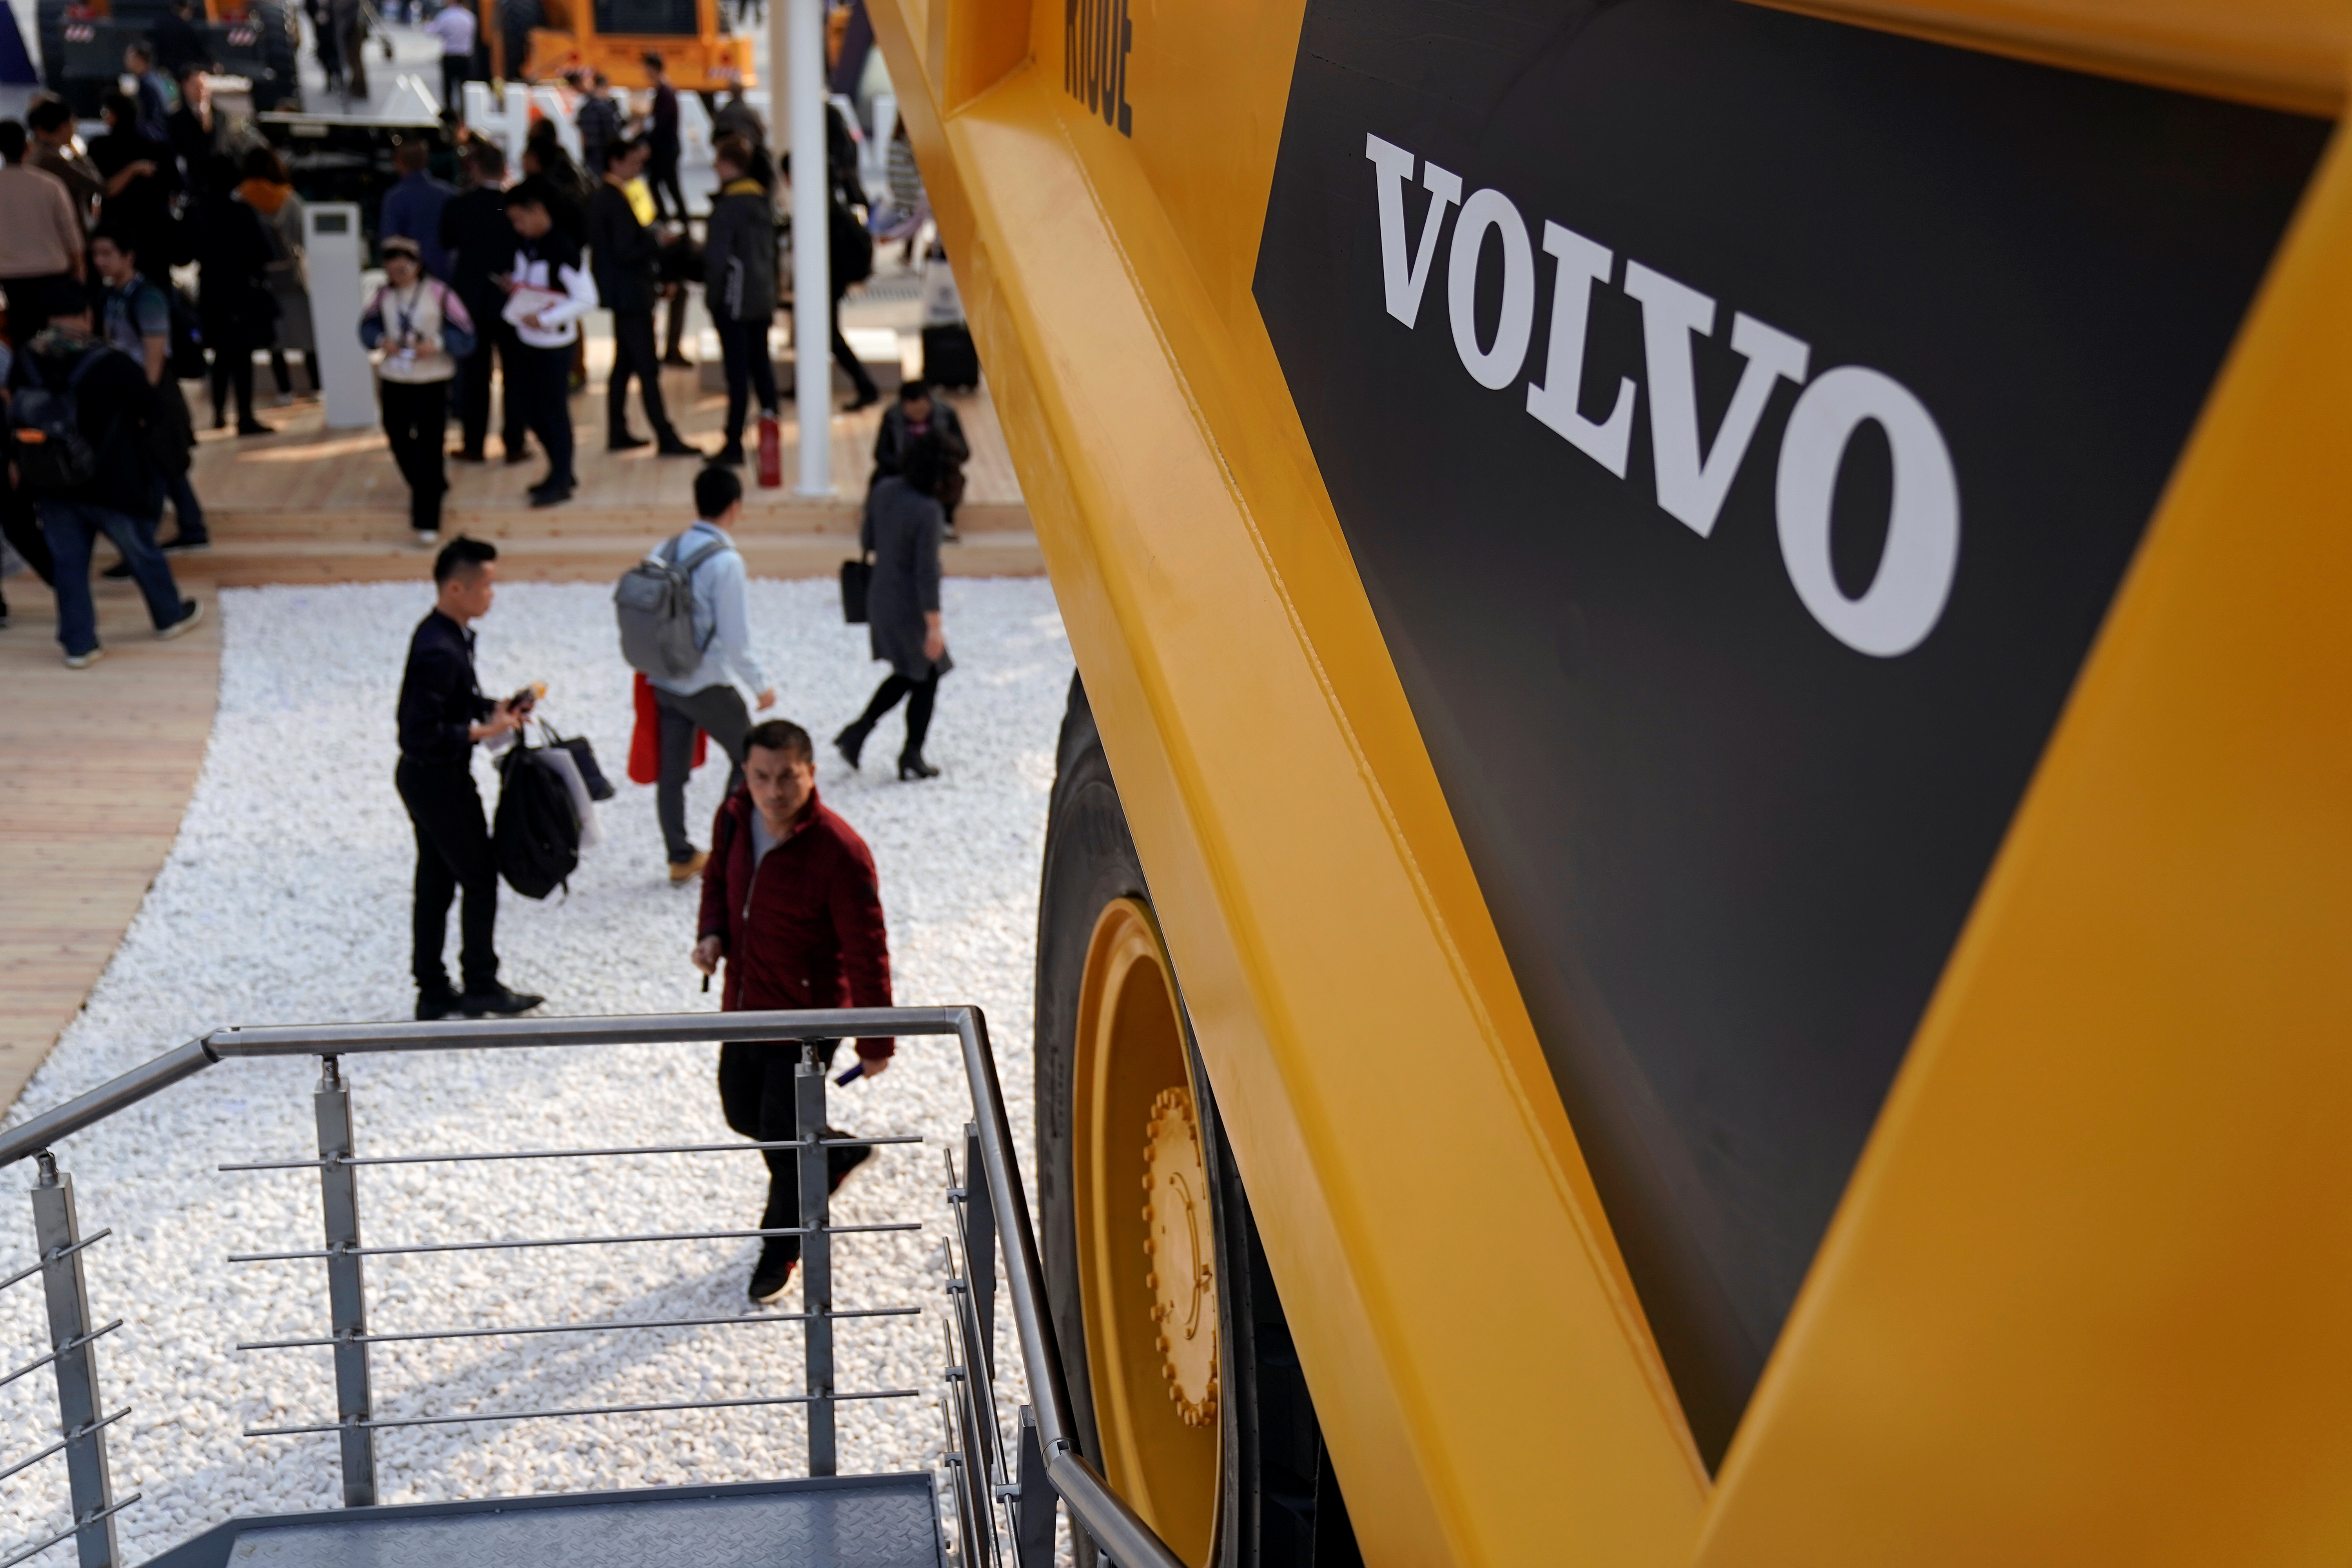 People visit heavy machinery of Volvo at Bauma China, the International Trade Fair for Construction Machinery in Shanghai, China November 27, 2018. REUTERS/Aly Song/Files